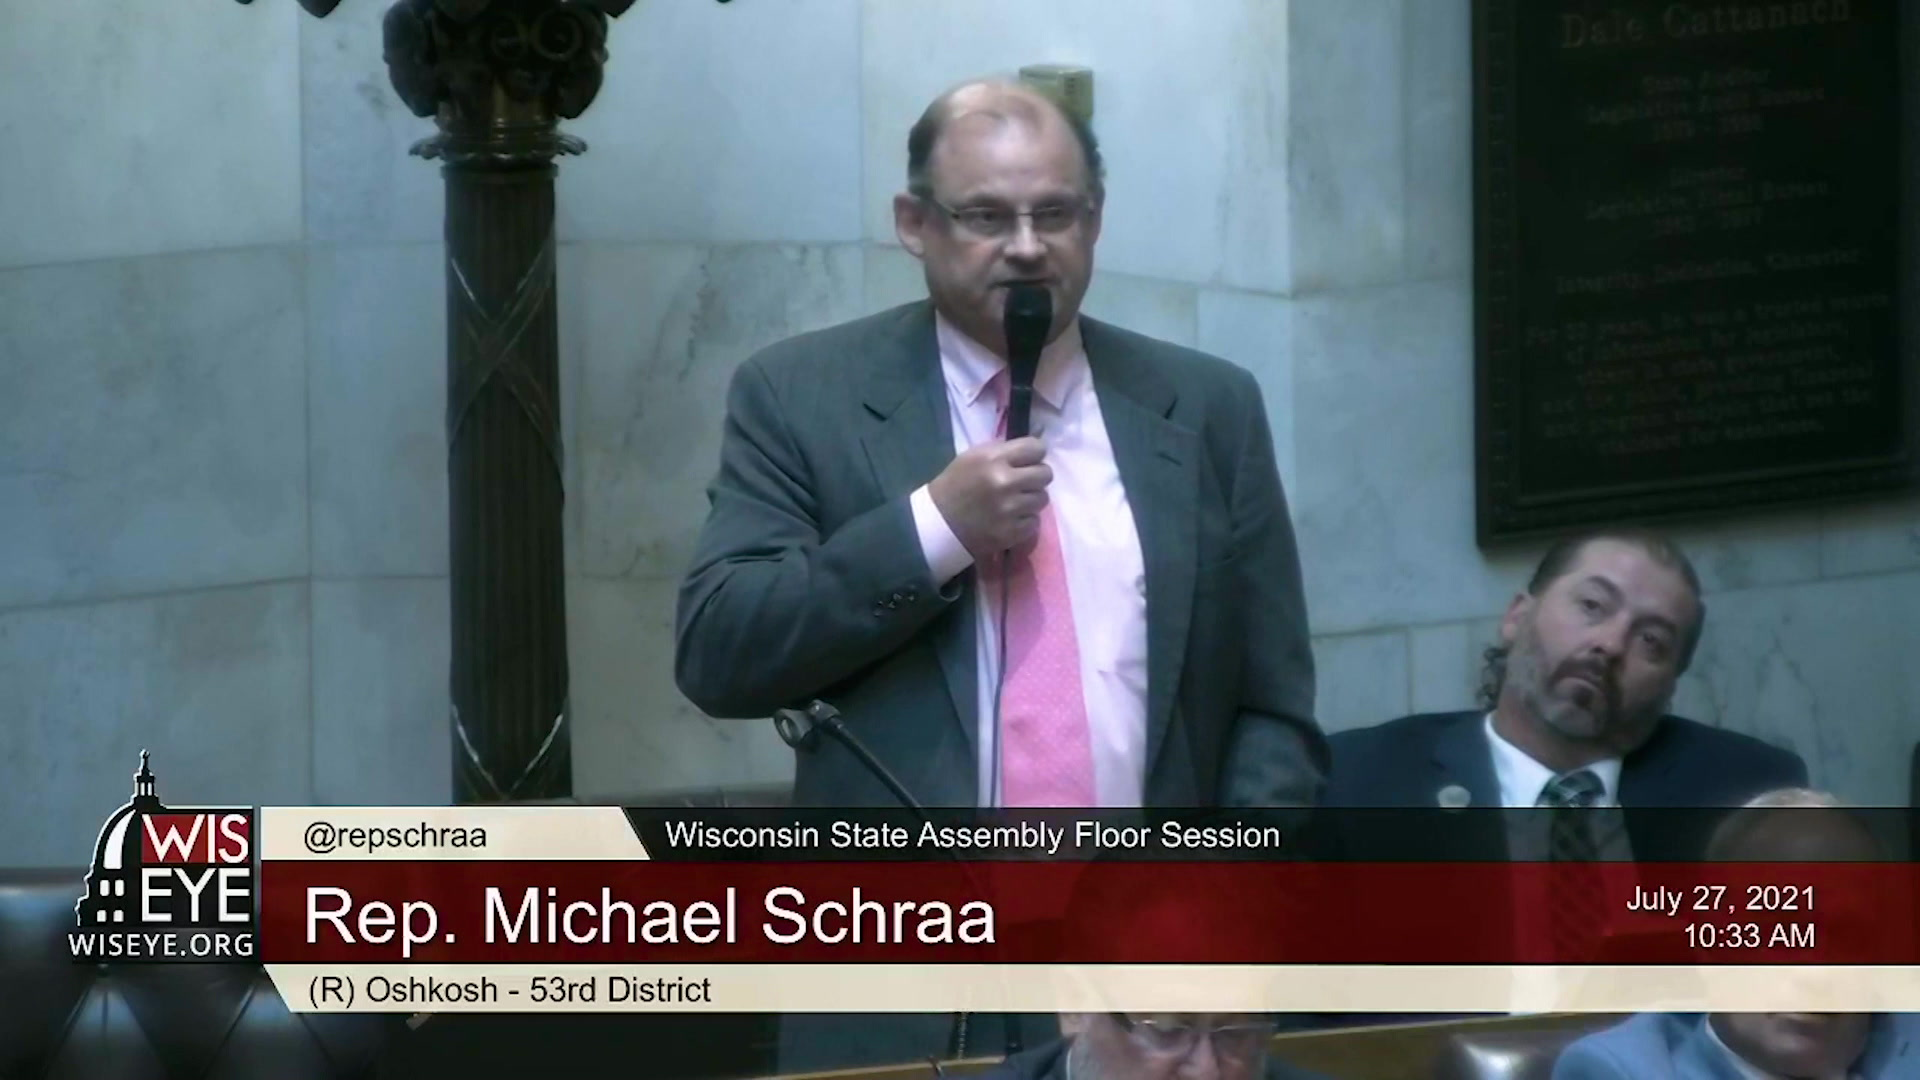 Michael Schraa holds a microphone and speaks in the Wisconsin Assembly chambers.